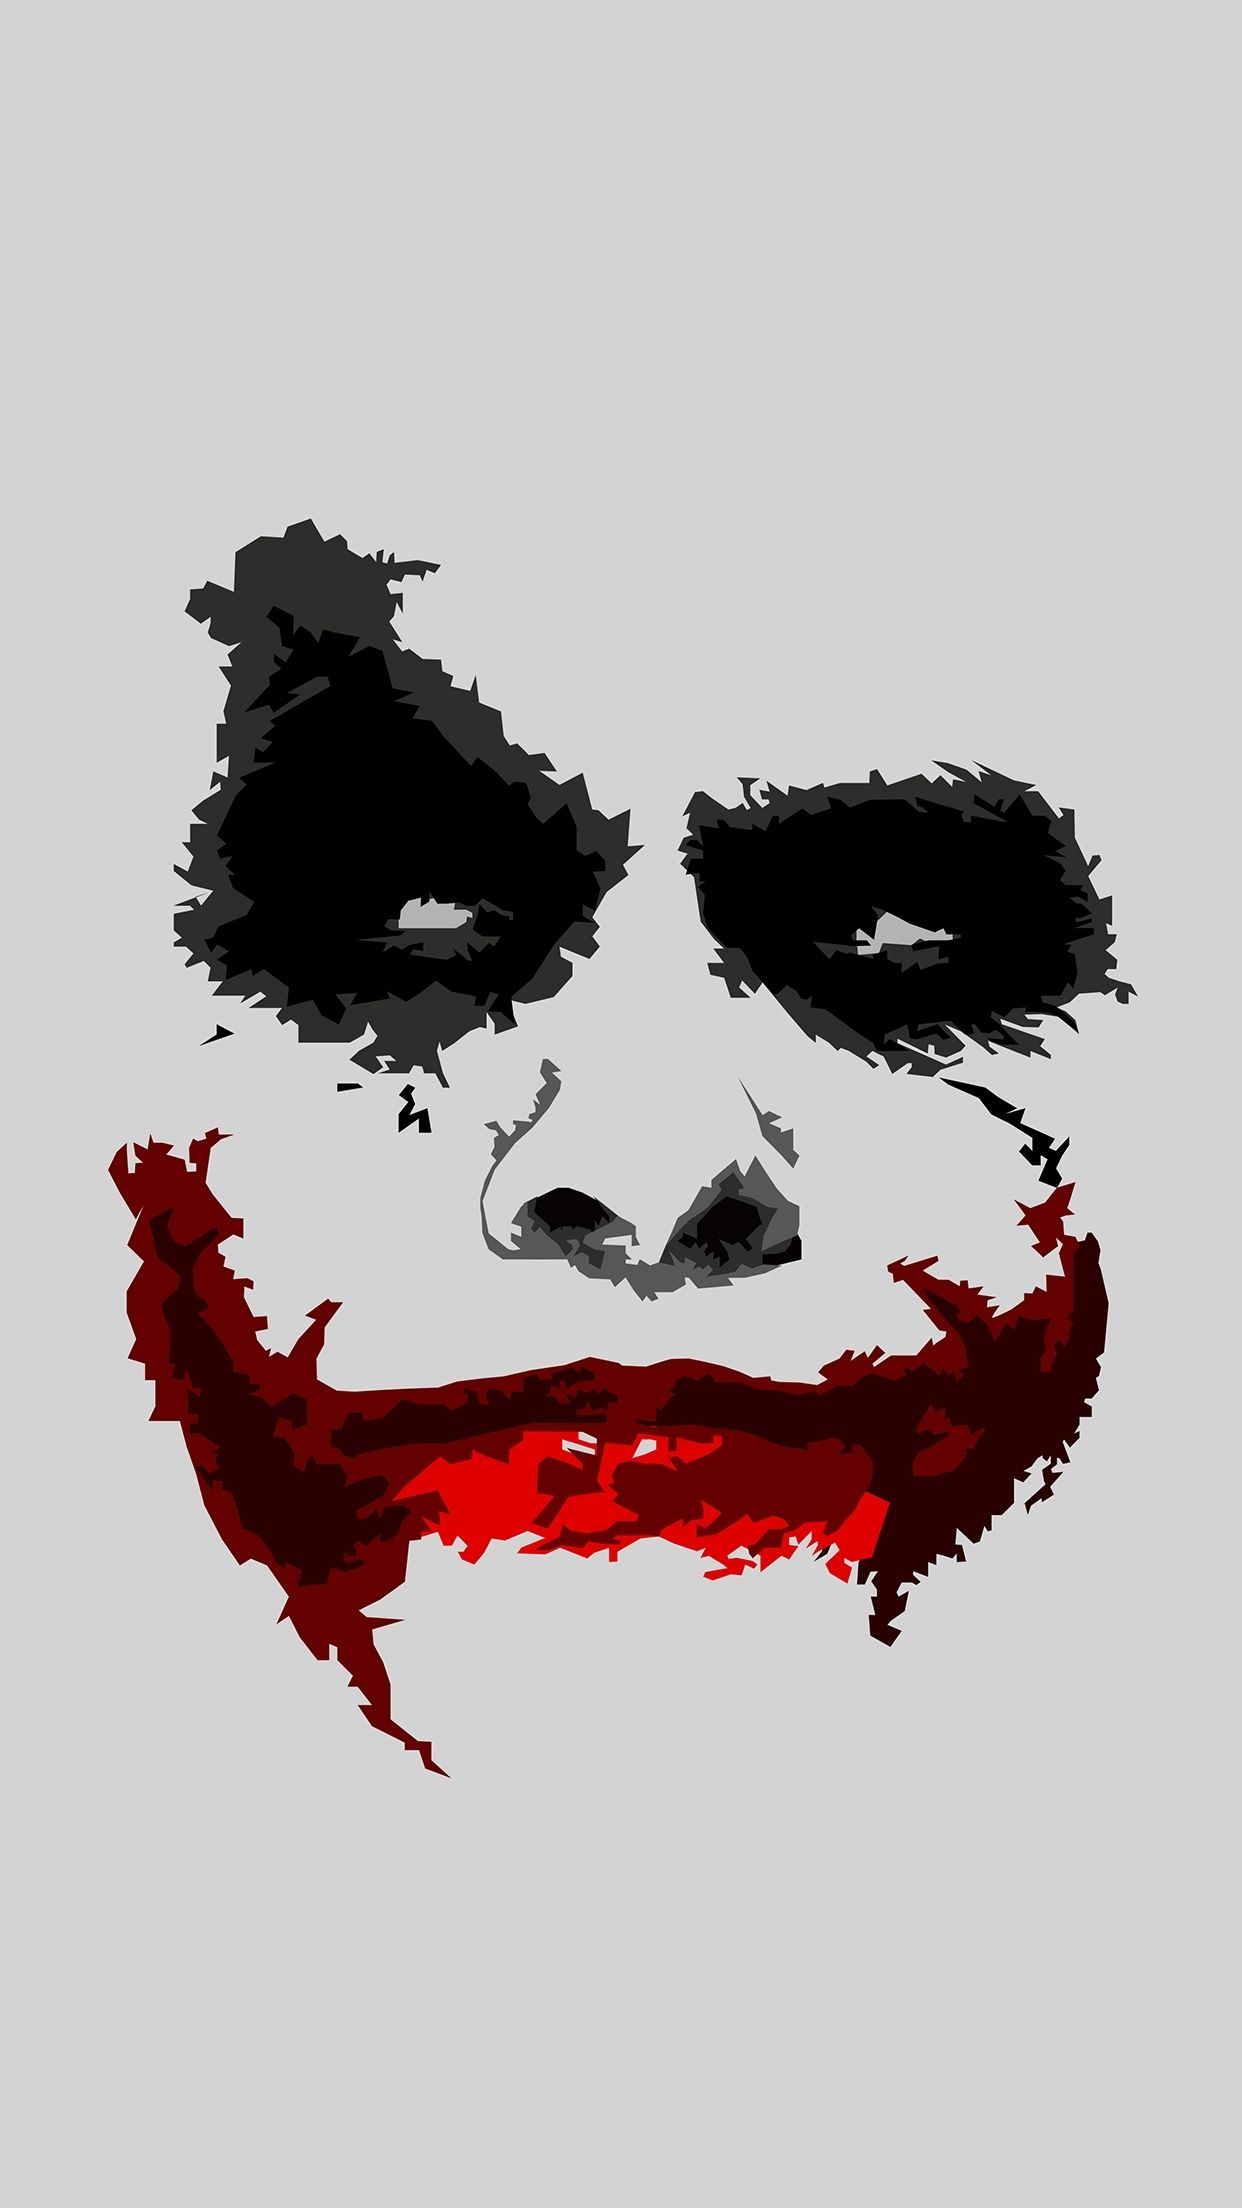 The Joker Iphone Wallpaper Hd Download New The Joker Iphone